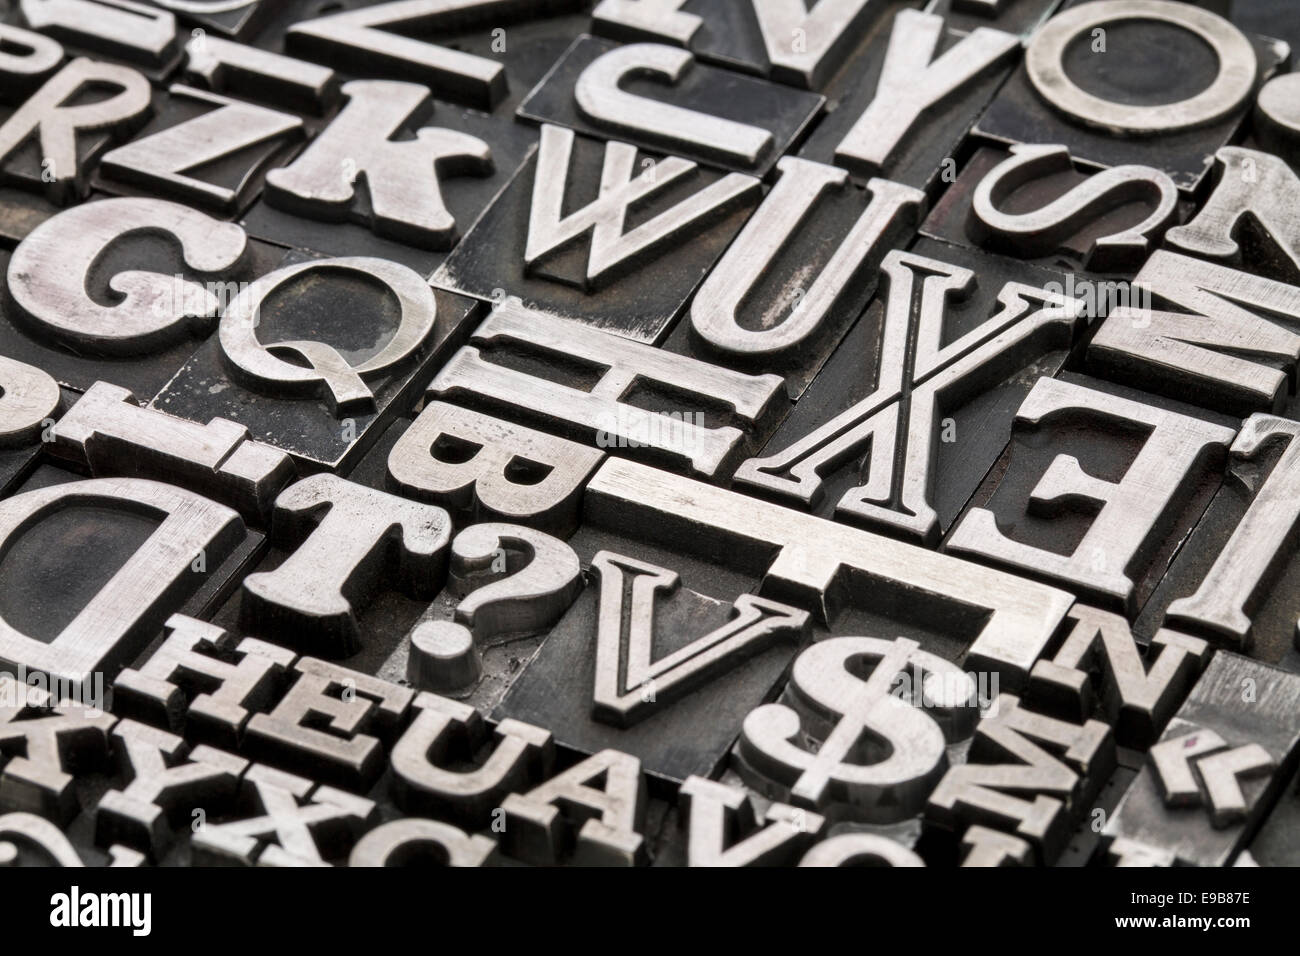 stock photo metal type abstract vintage letterpress printing blocks with letters dollar sign and question mark